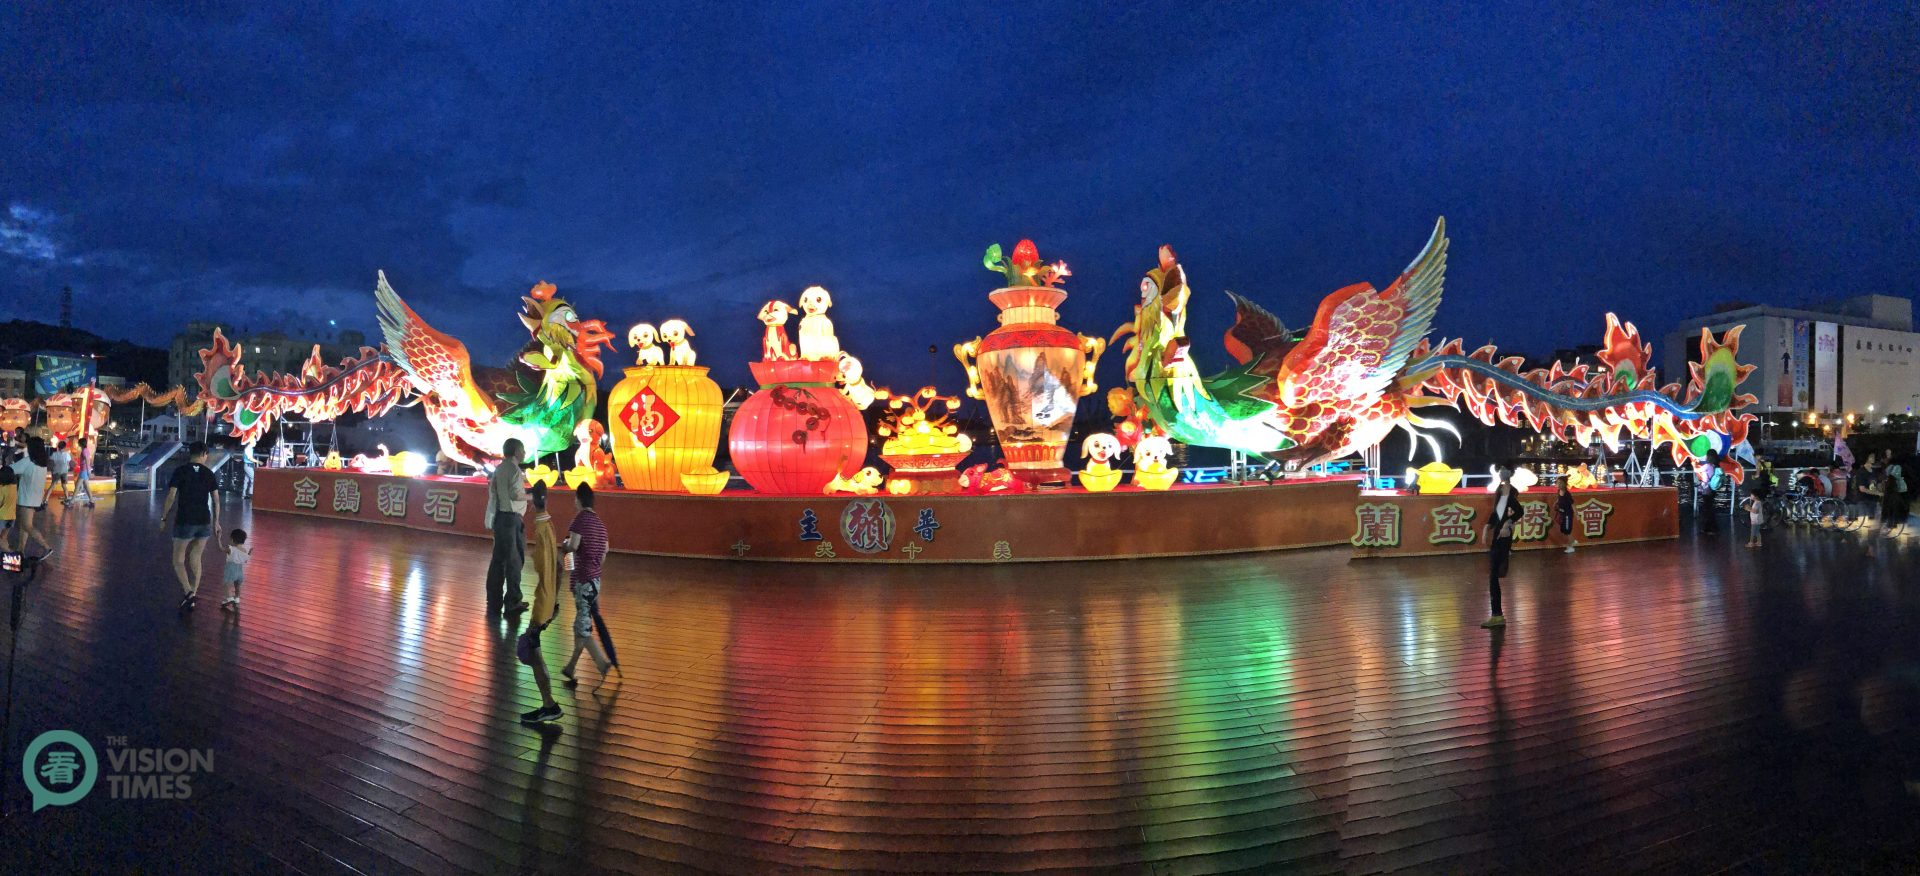 During the Ghost Month, the Keelung Maritime Plaza (基隆海洋廣場) is richly decorated. (Image: Billy Shyu / Vision Times)